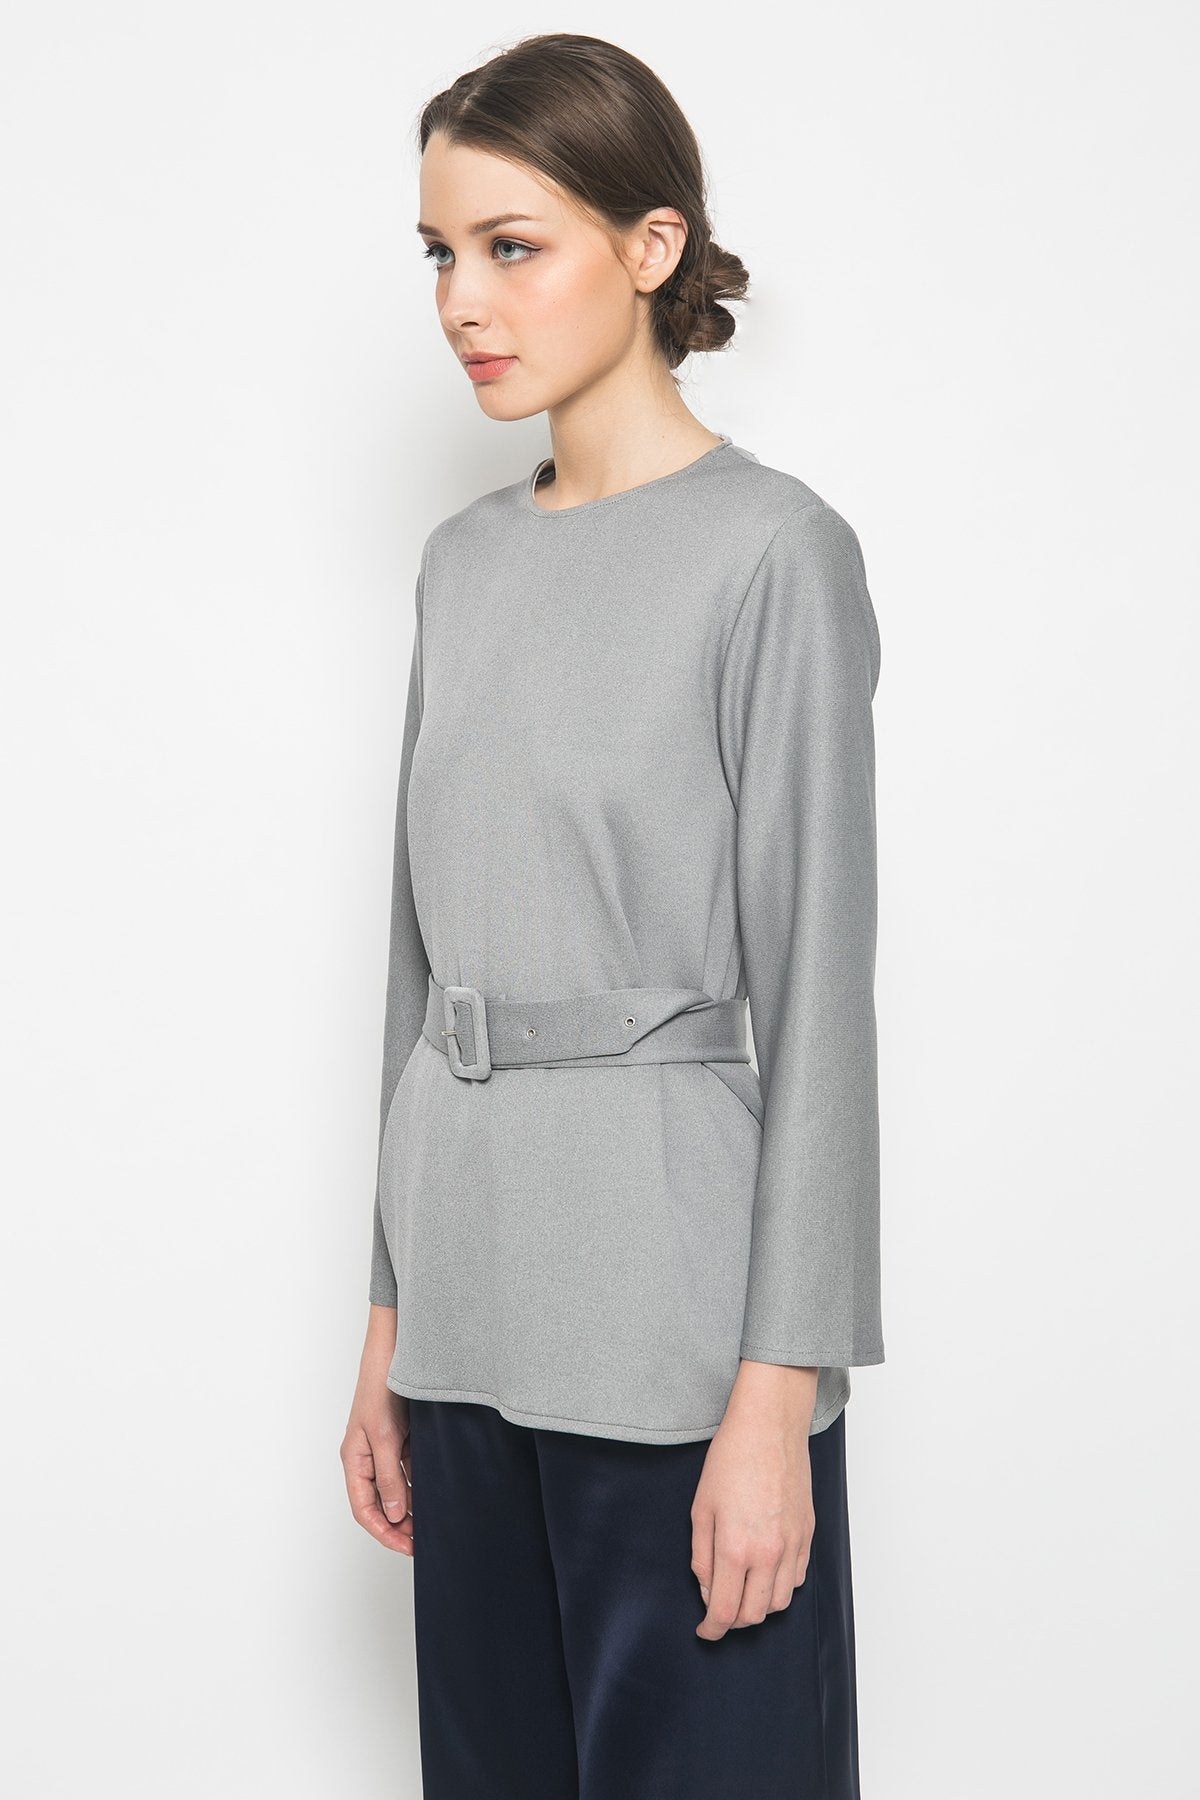 Elaine Top in Grey White